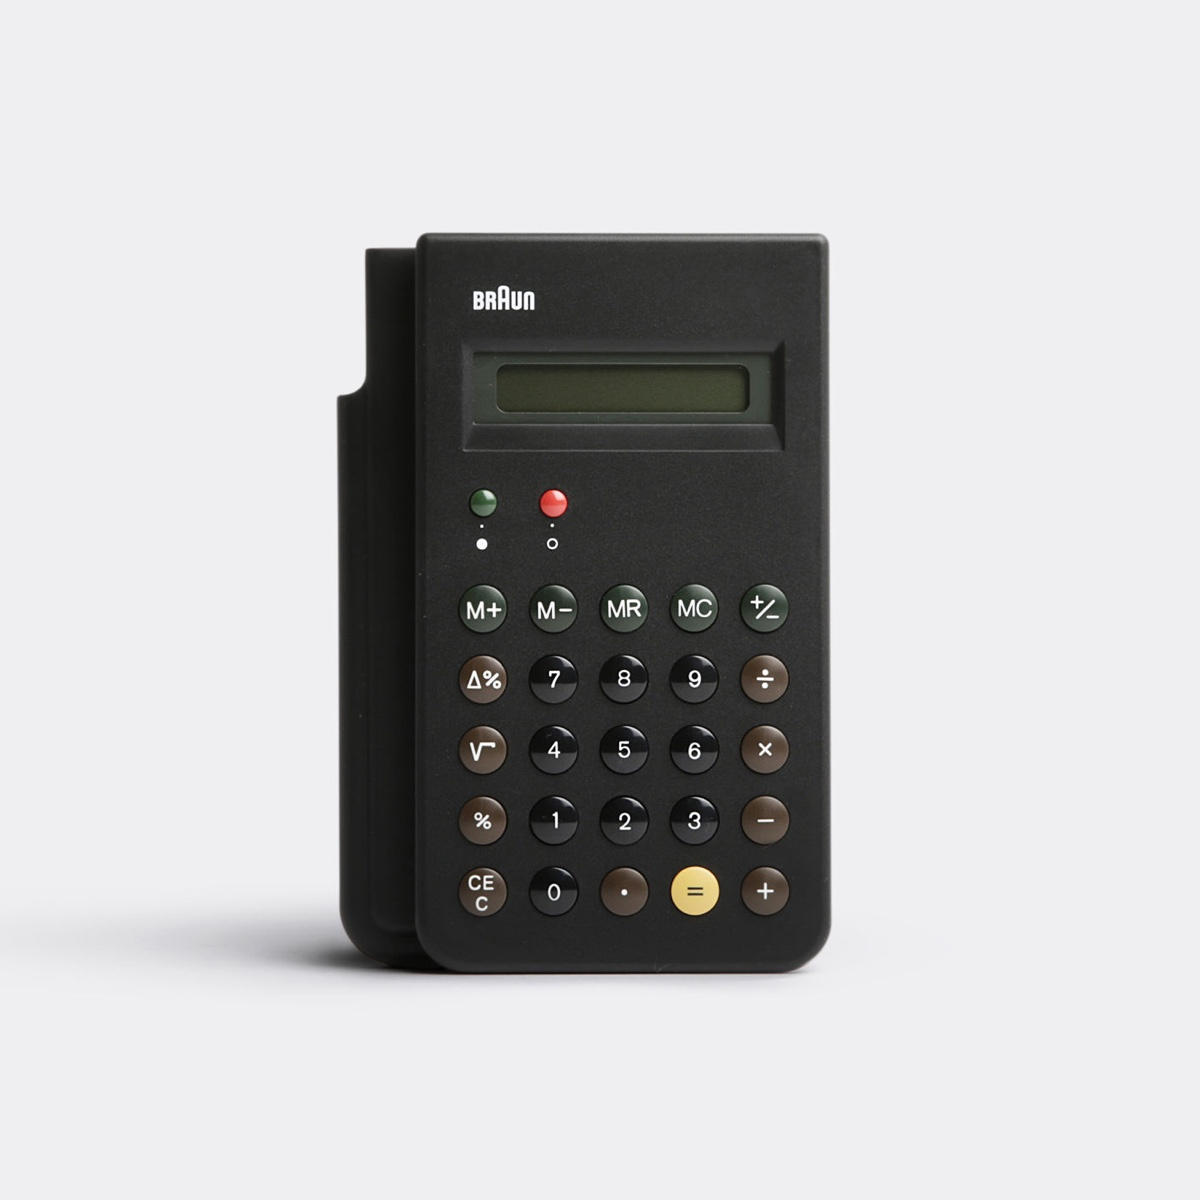 Braun ET66 calculator. Image © WallpaperSTORE*.